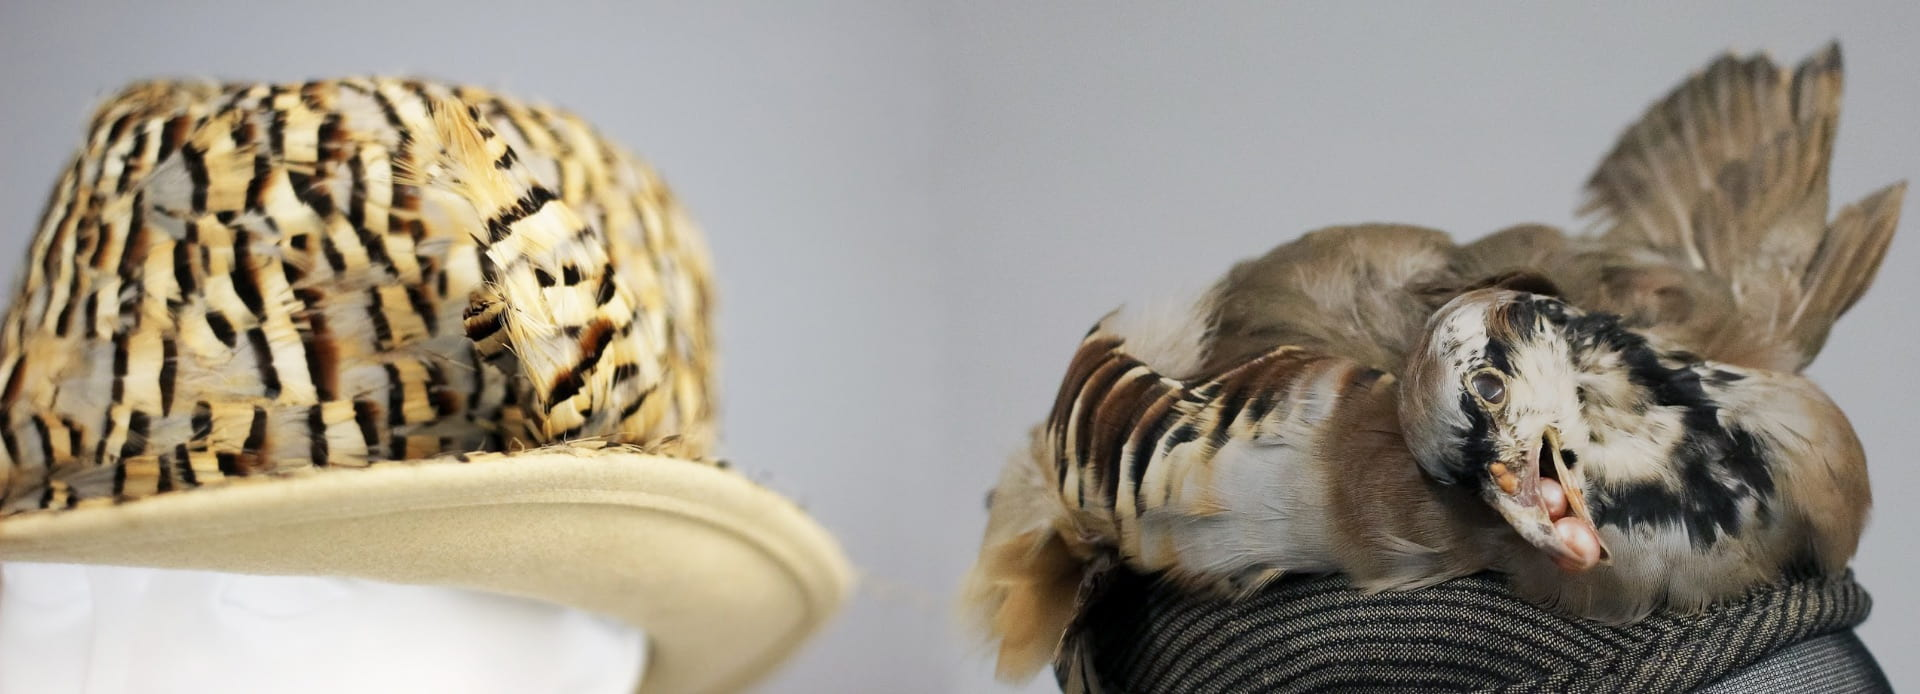 Left, a fedora style hat, circa 1945, designed by milliner Jack McConnell, and featuring distinctive patterned flank feathers of the Chukar partridge. On the right, a Chukar skin salvaged from a Pennsylvania hunter and given new life as a hat, designed by contemporary milliner-taxidermist Rachel Schlass in 2017. Photos by Grace Anderson.